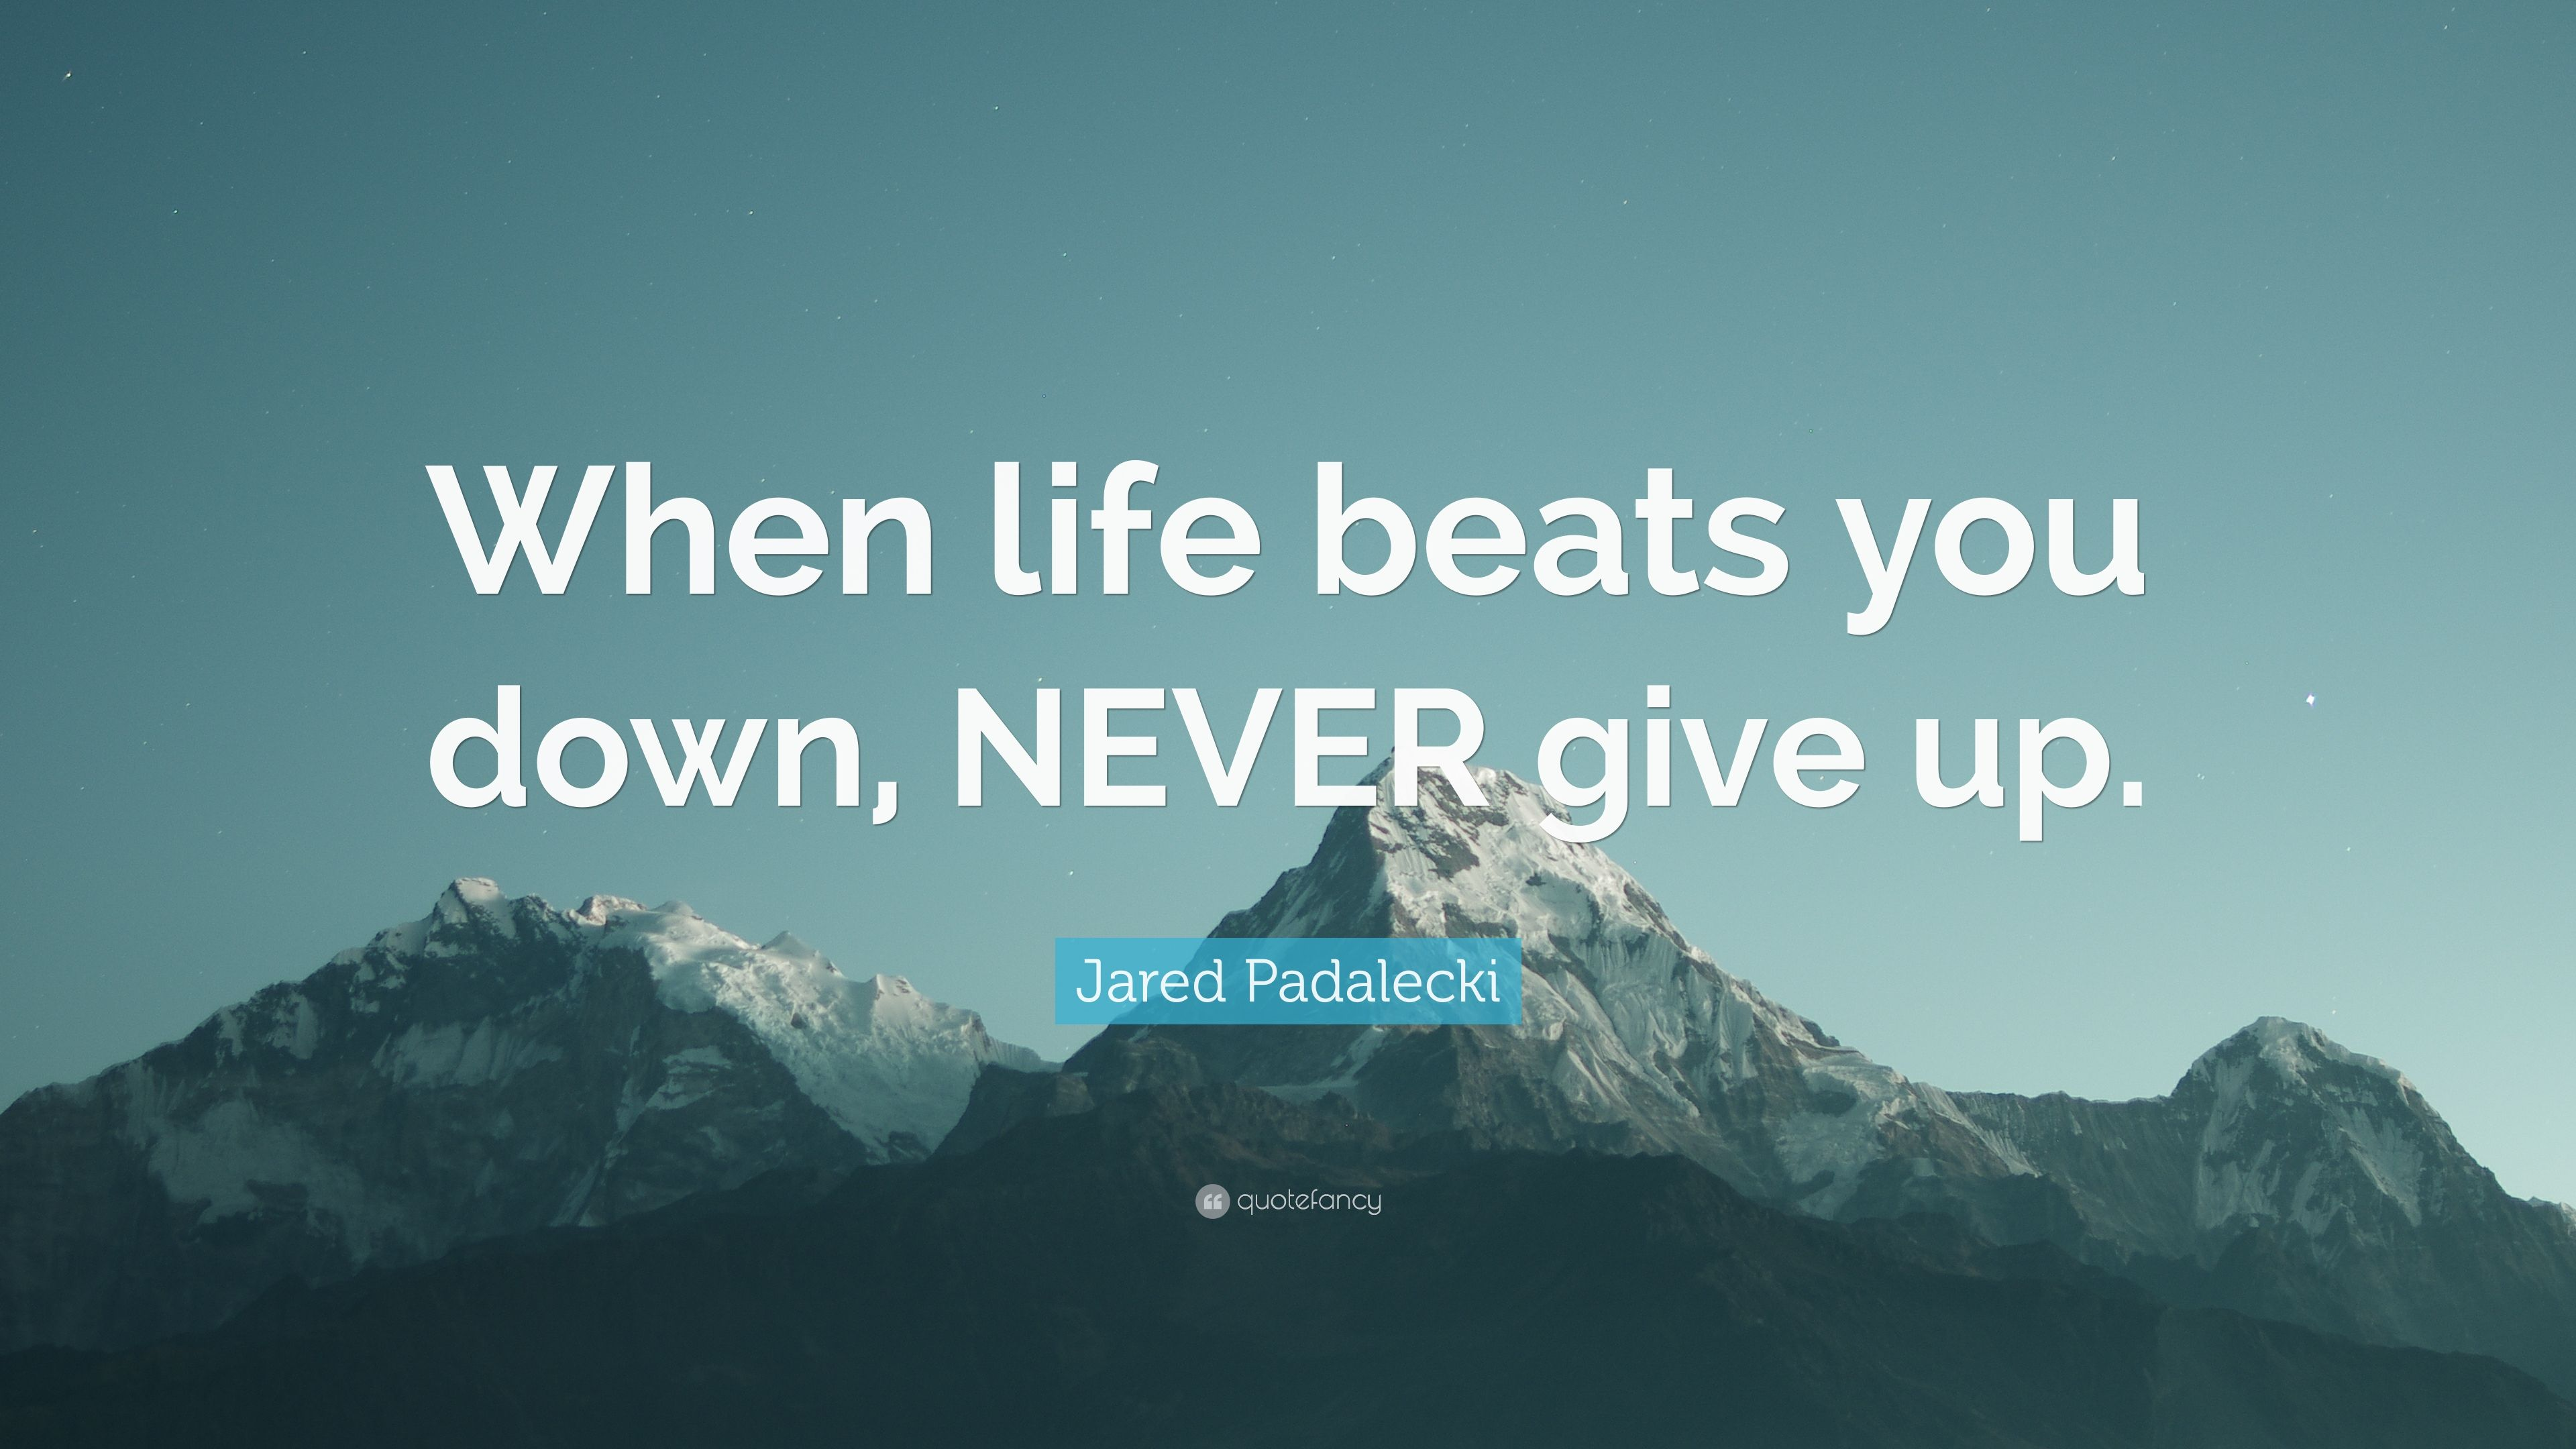 Jared padalecki quotes - Jared Padalecki Quote When Life Beats You Down Never Give Up